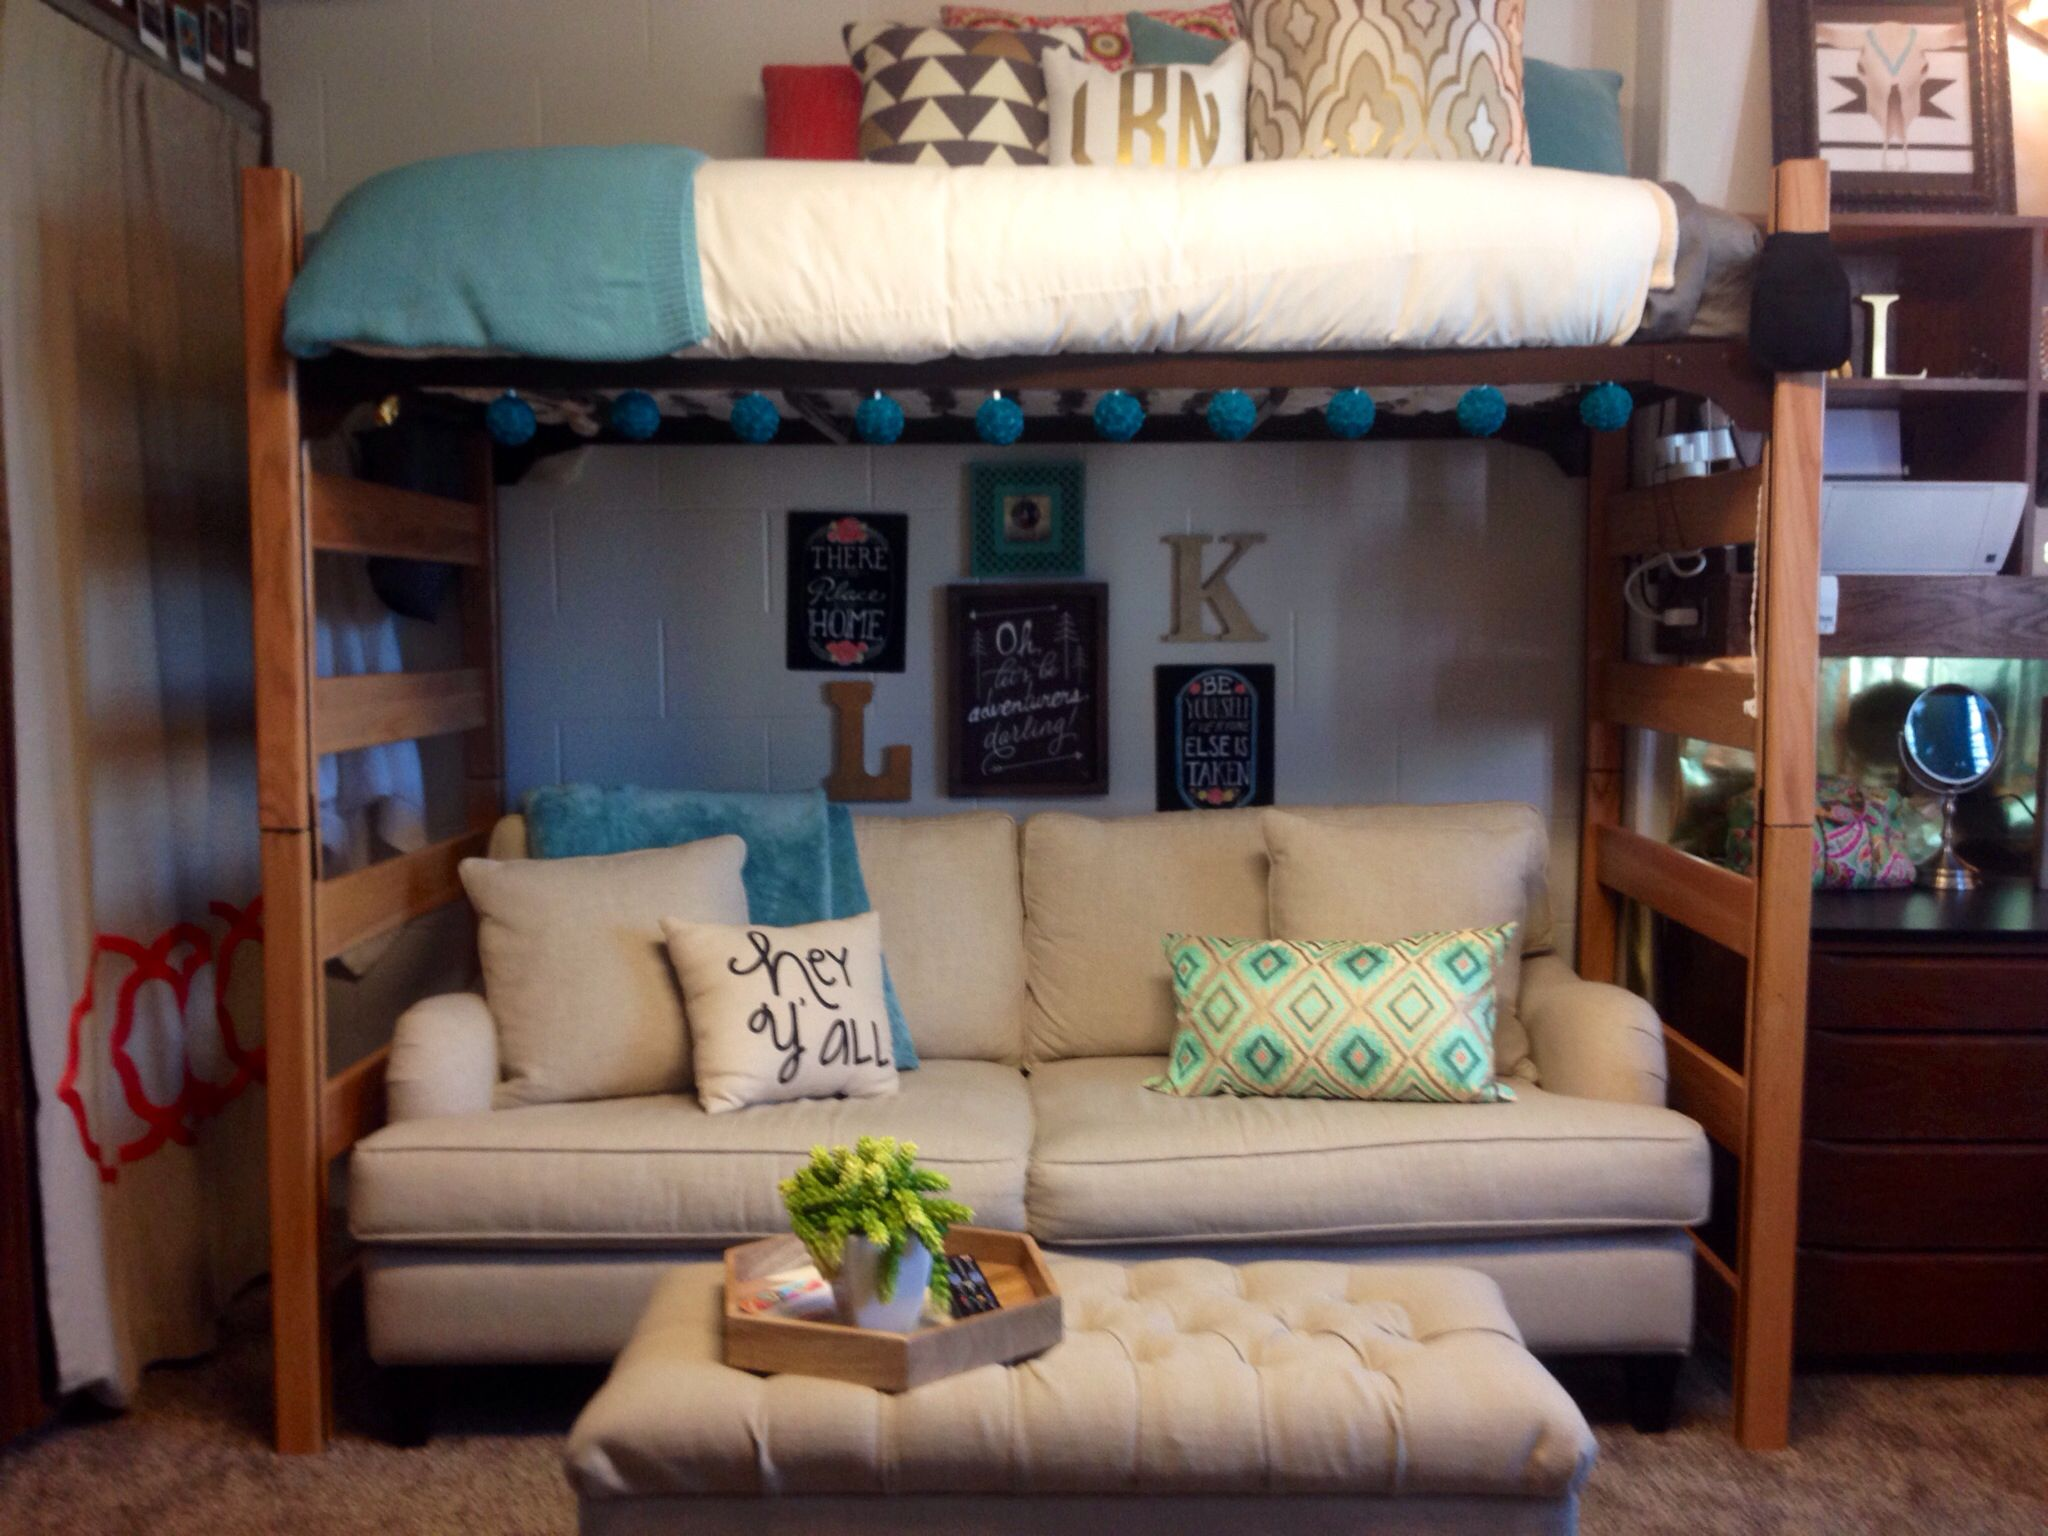 Dorms Decor · I Like The Couch Under The Bunk. Itu0027s A Pretty Cool Setup! Part 27